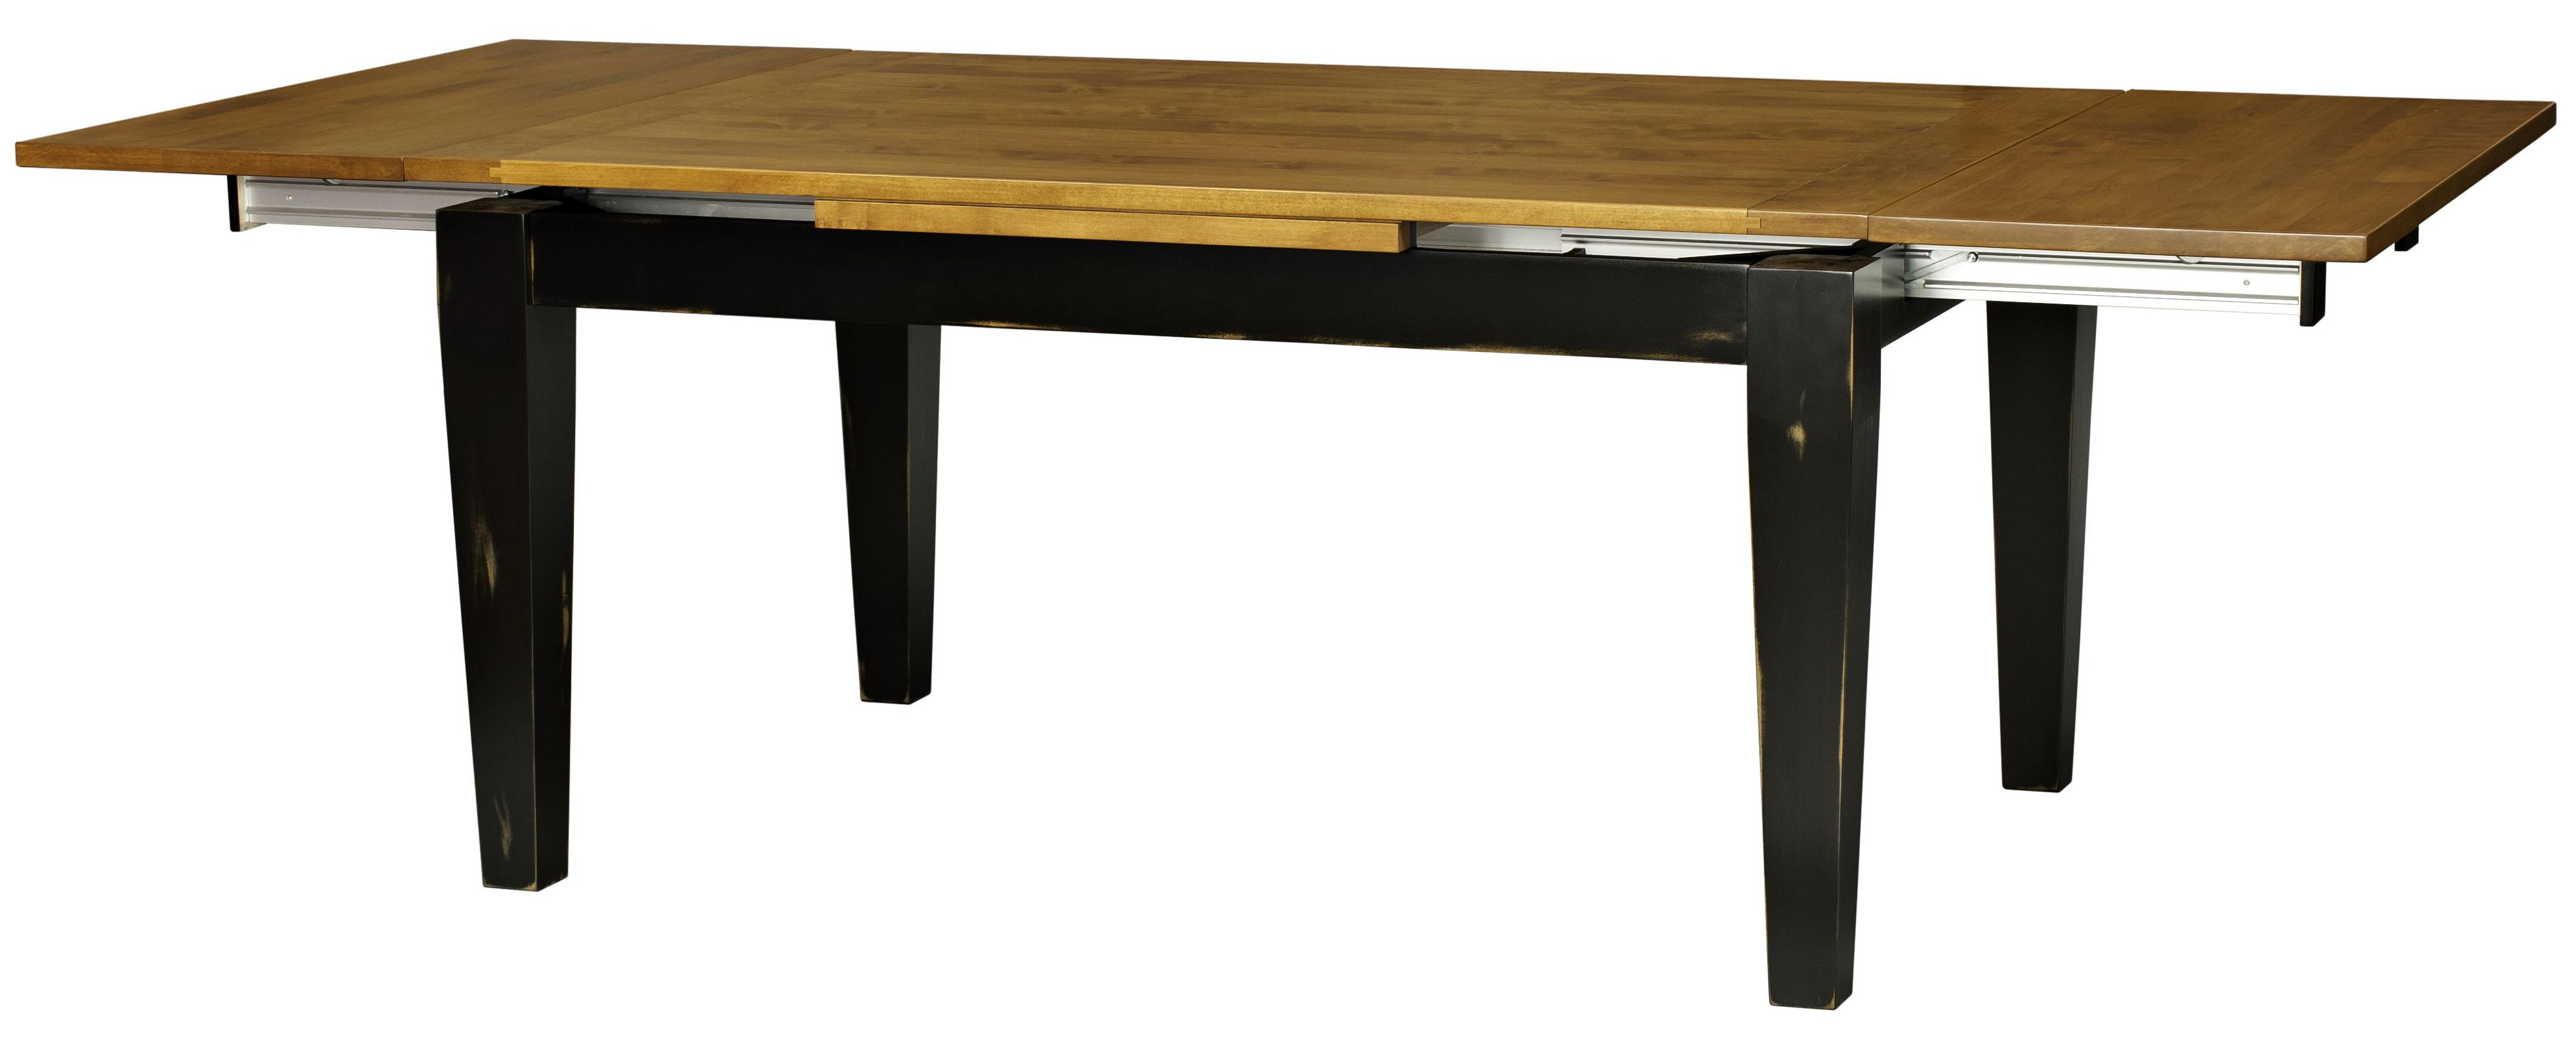 Avalon Collection Table at Williams & Kay